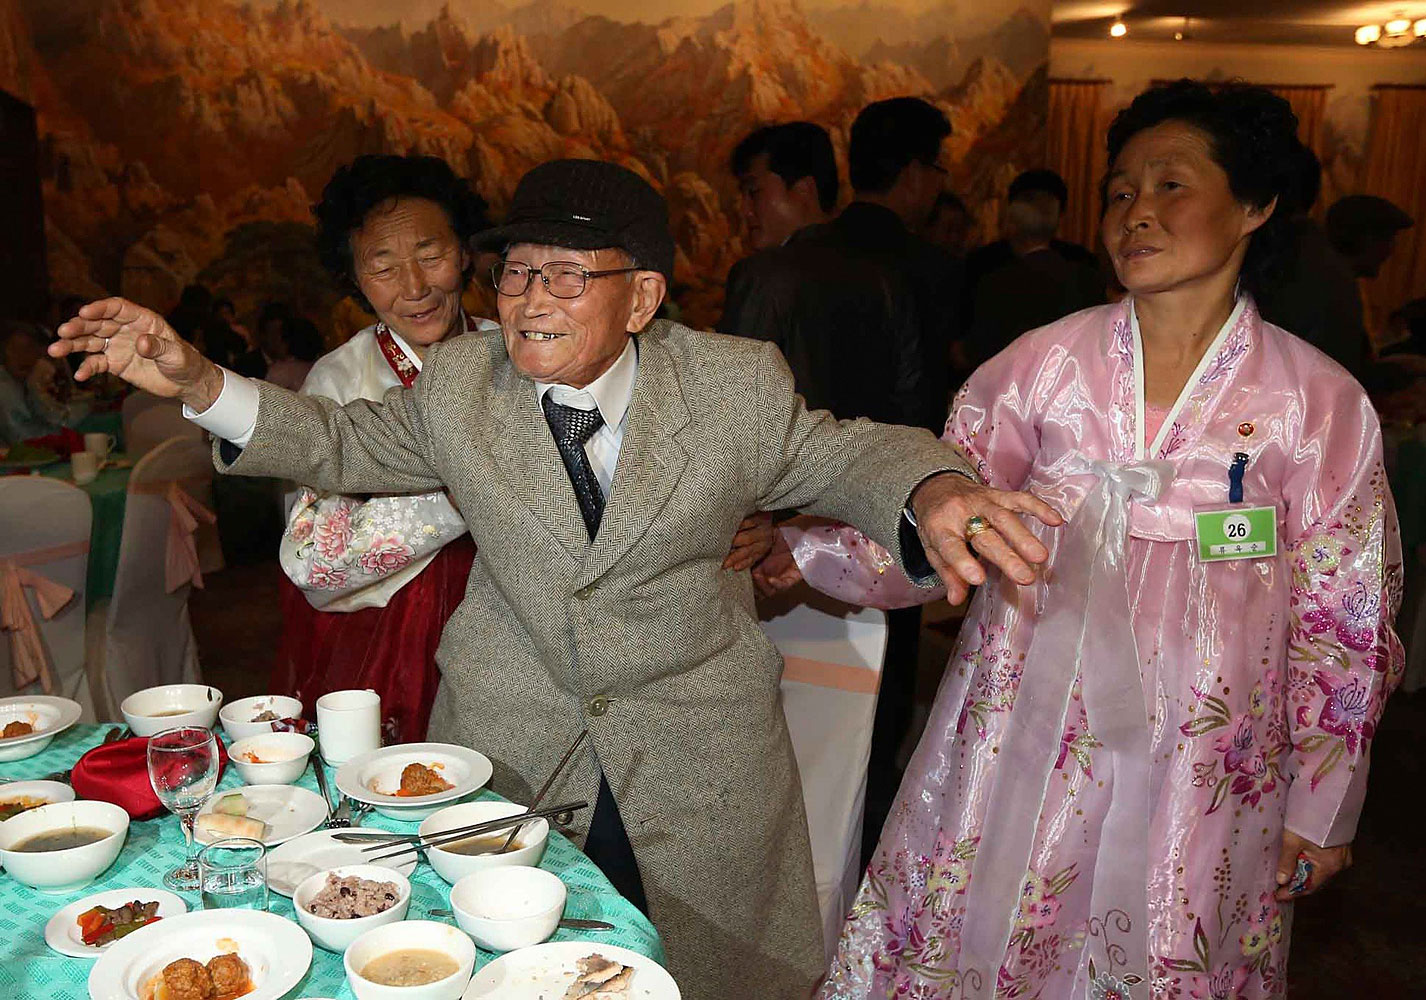 South Korean Yoo Youn-sik, 92, dances as he attends a welcome dinner with his North Korean family members during their family reunion at the Mount Kumgang resort in North Korea Feb. 20, 2014.